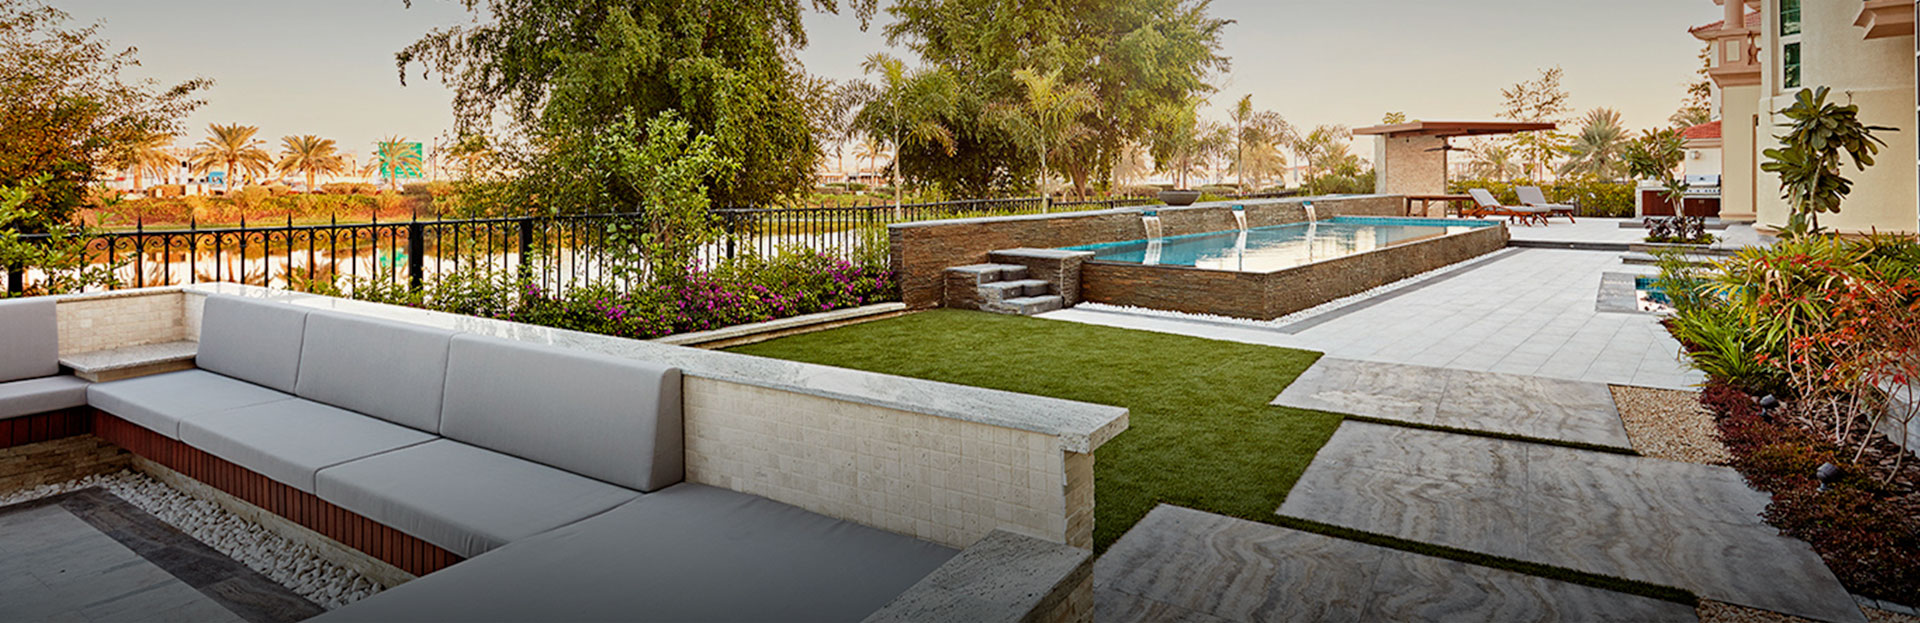 Landscape designer dubai landscape design company for Design your landscape